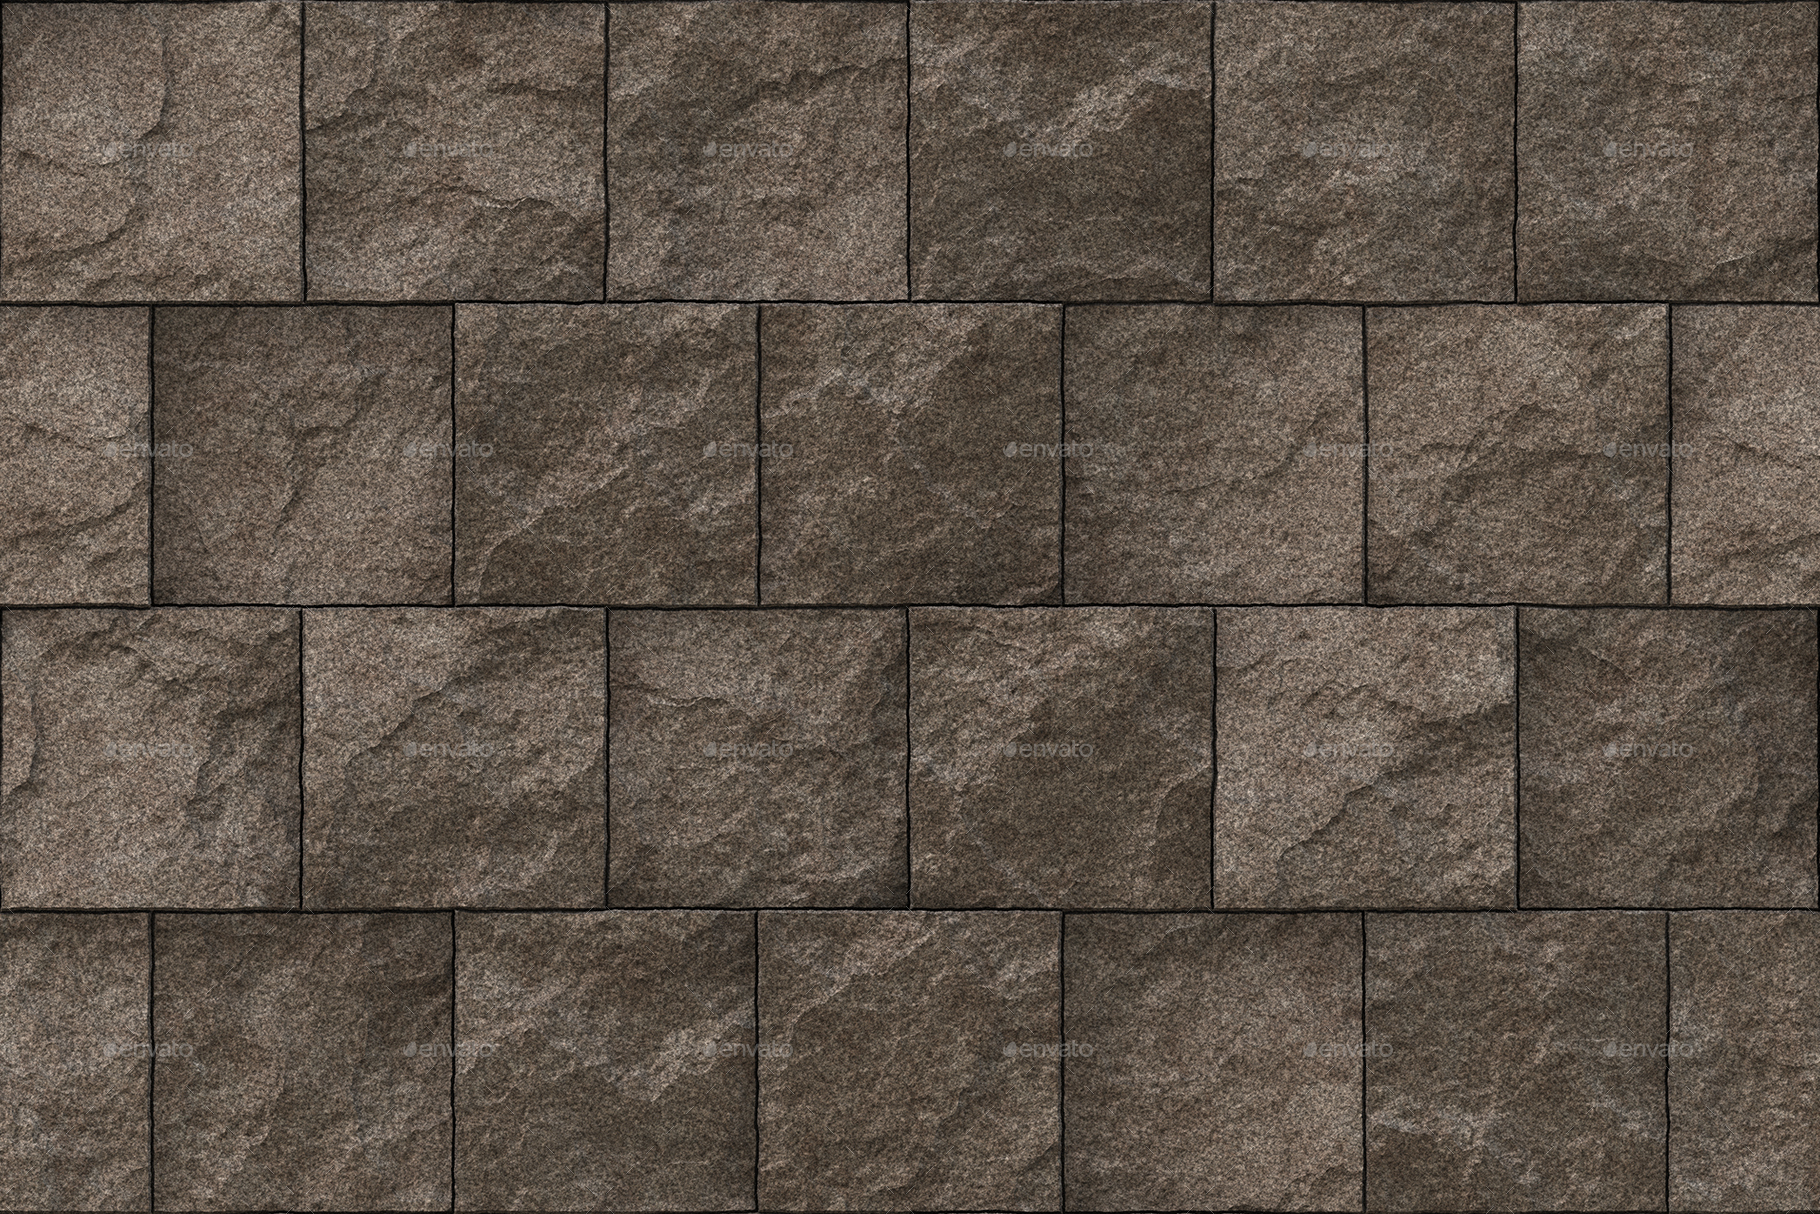 10 Stone Block Wall Textures by webcombo  3DOcean